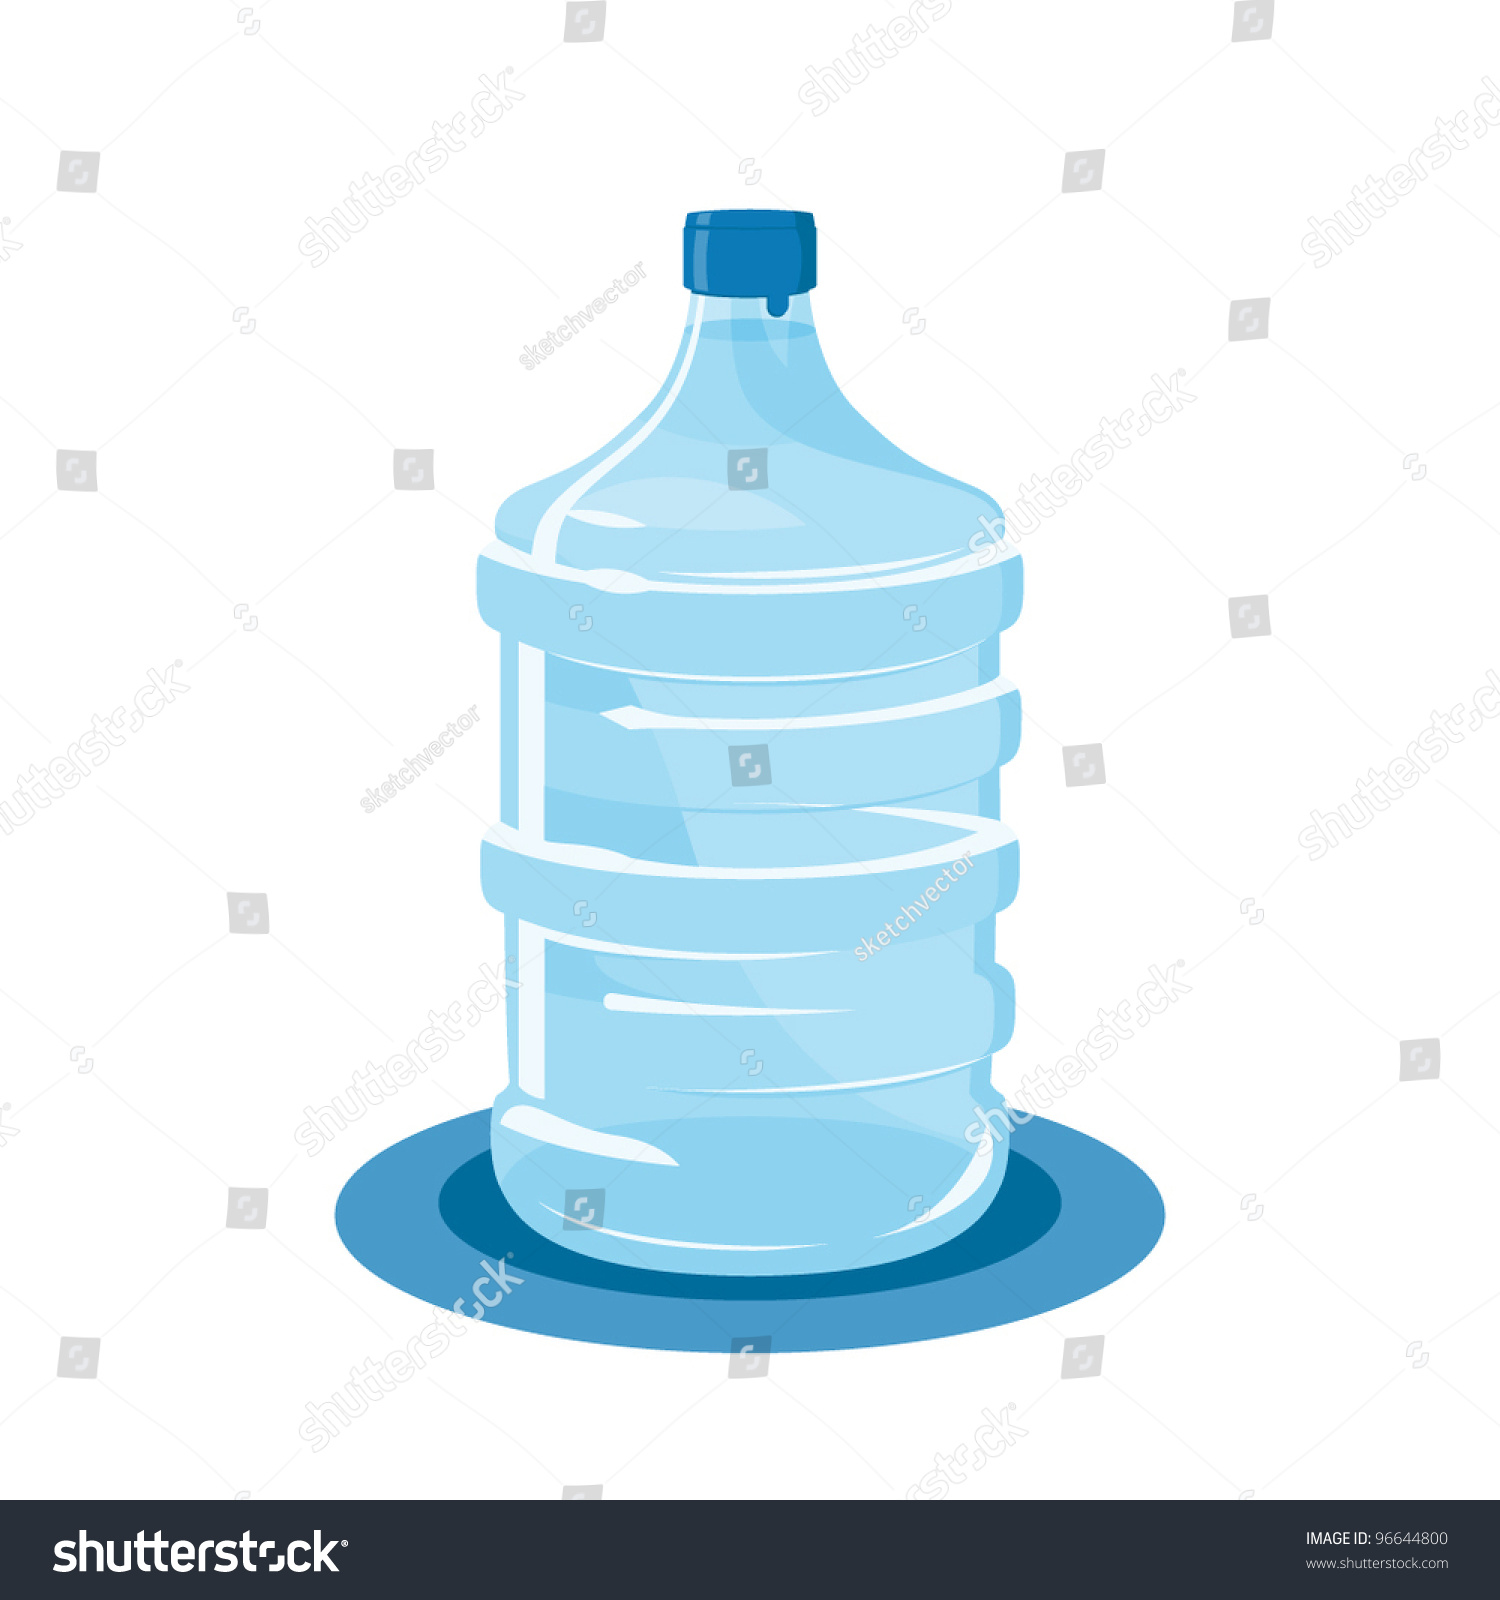 Water Bottle Vector: Mineral Water Bottle Isolated On White Stock Vector